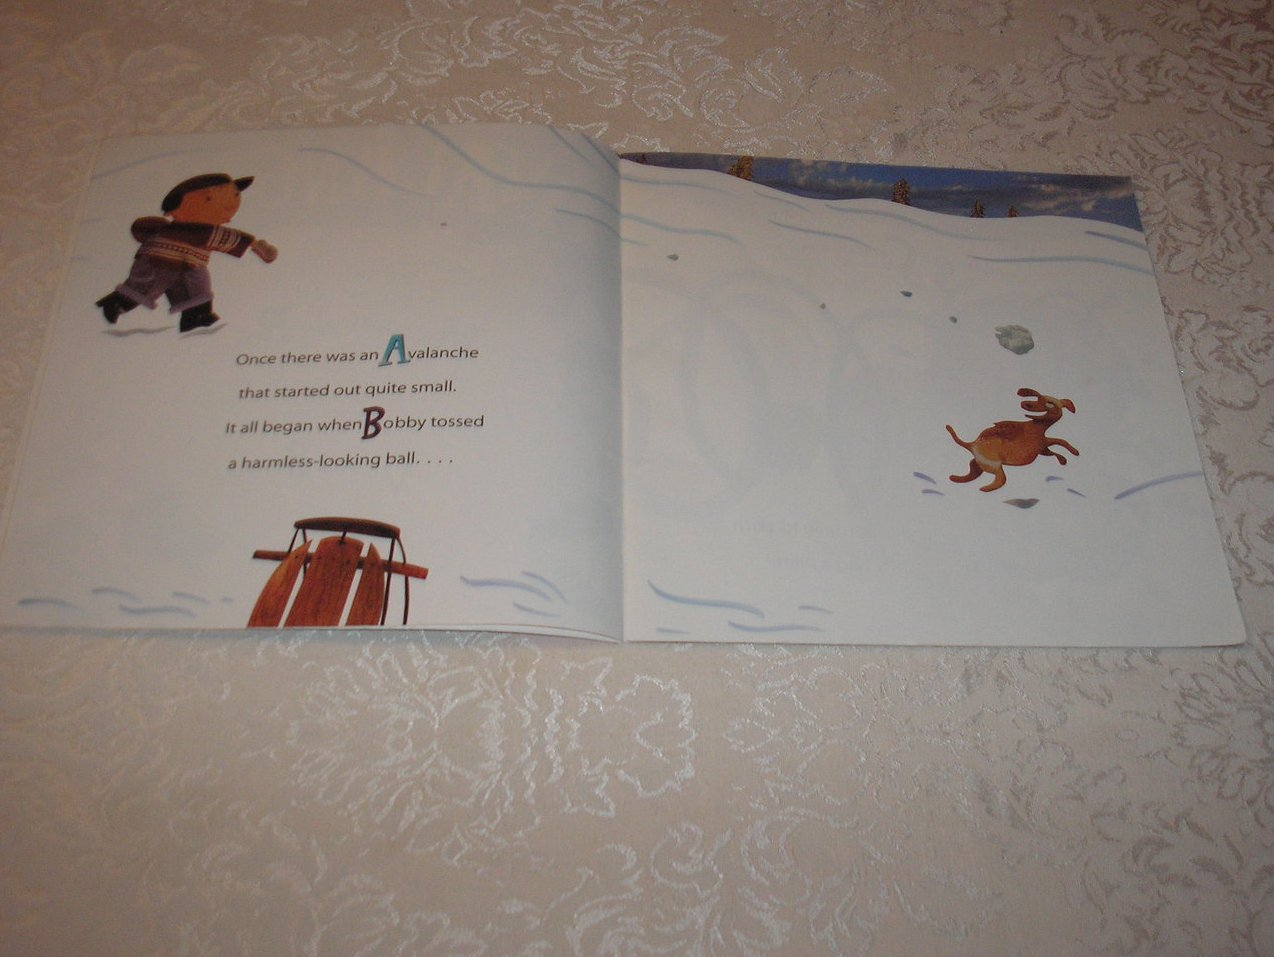 Image 2 of Avalanche Michael J. Rosen Good Rare Alphabet Softcover